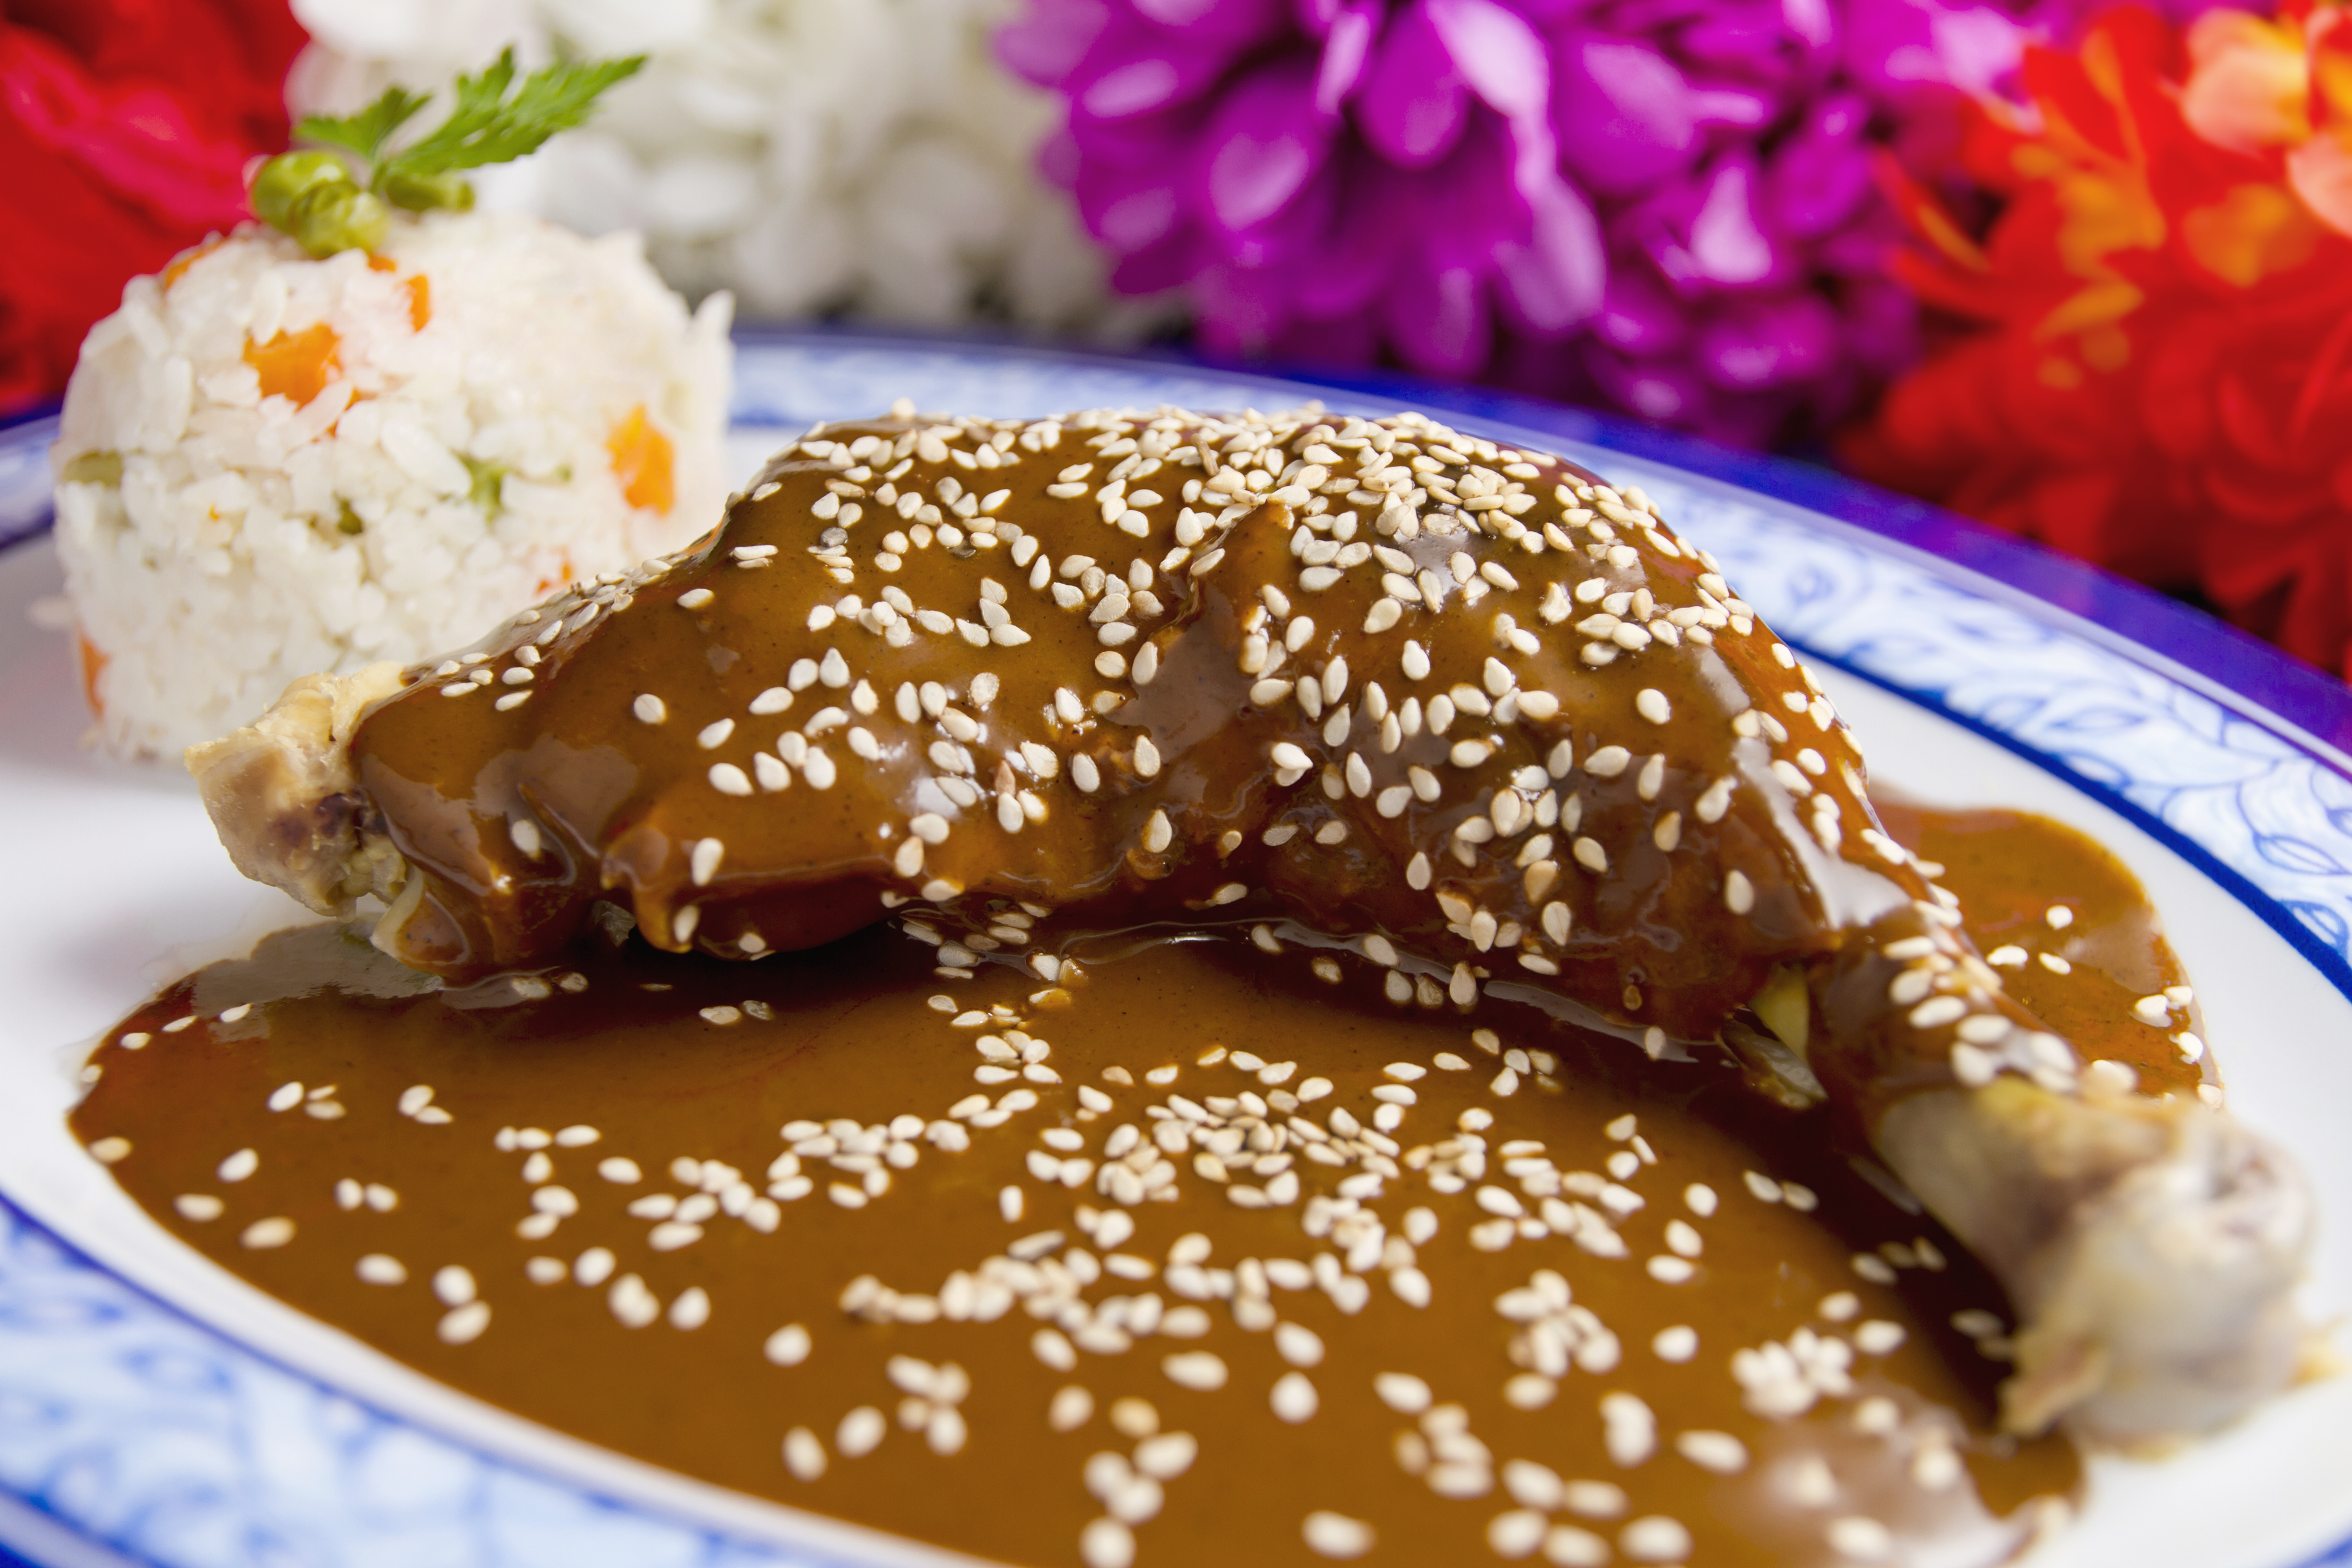 A traditional meal of mole served over chicken / Photo: shutterstock